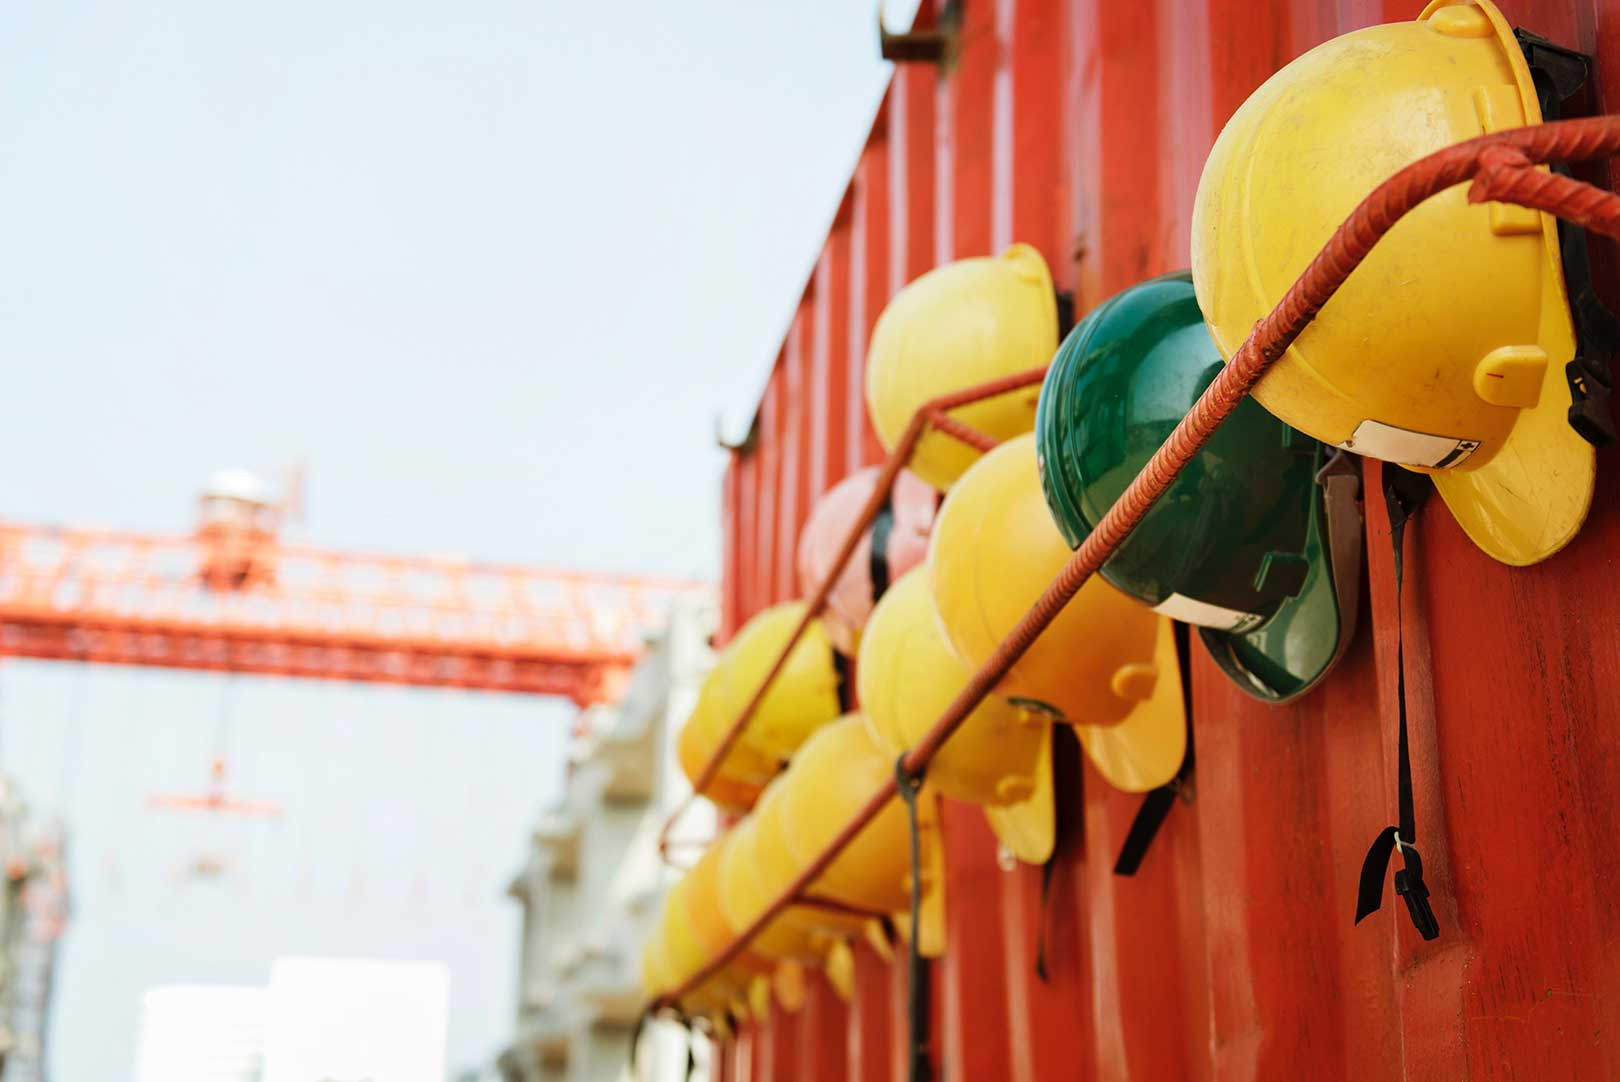 Construction small claim for arbitration